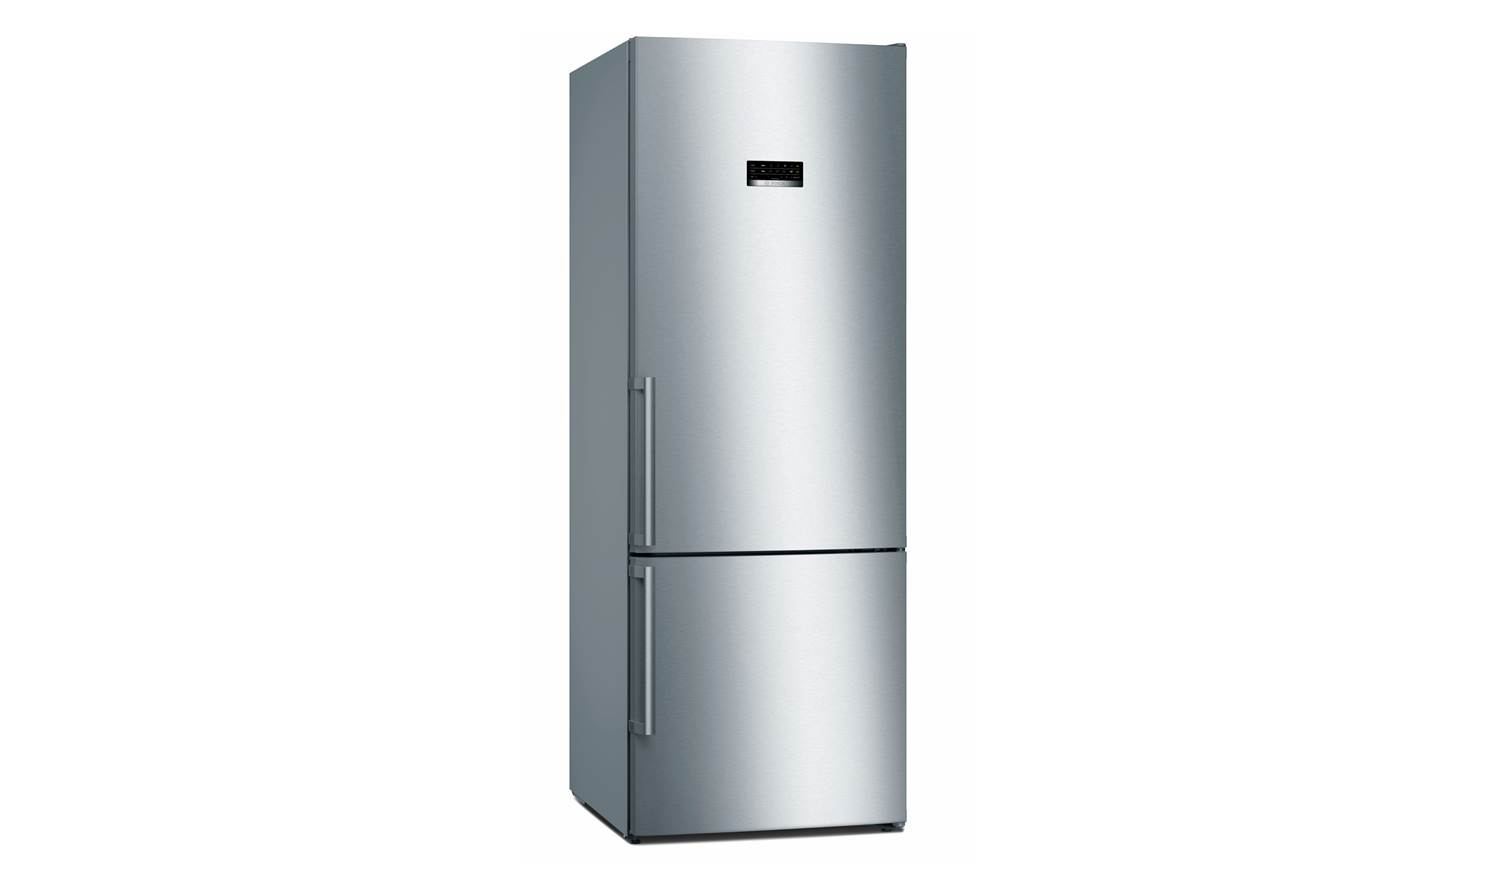 bosch kitchen appliances amazon table kgn56xi40 559l bottom freezer refrigerator harvey